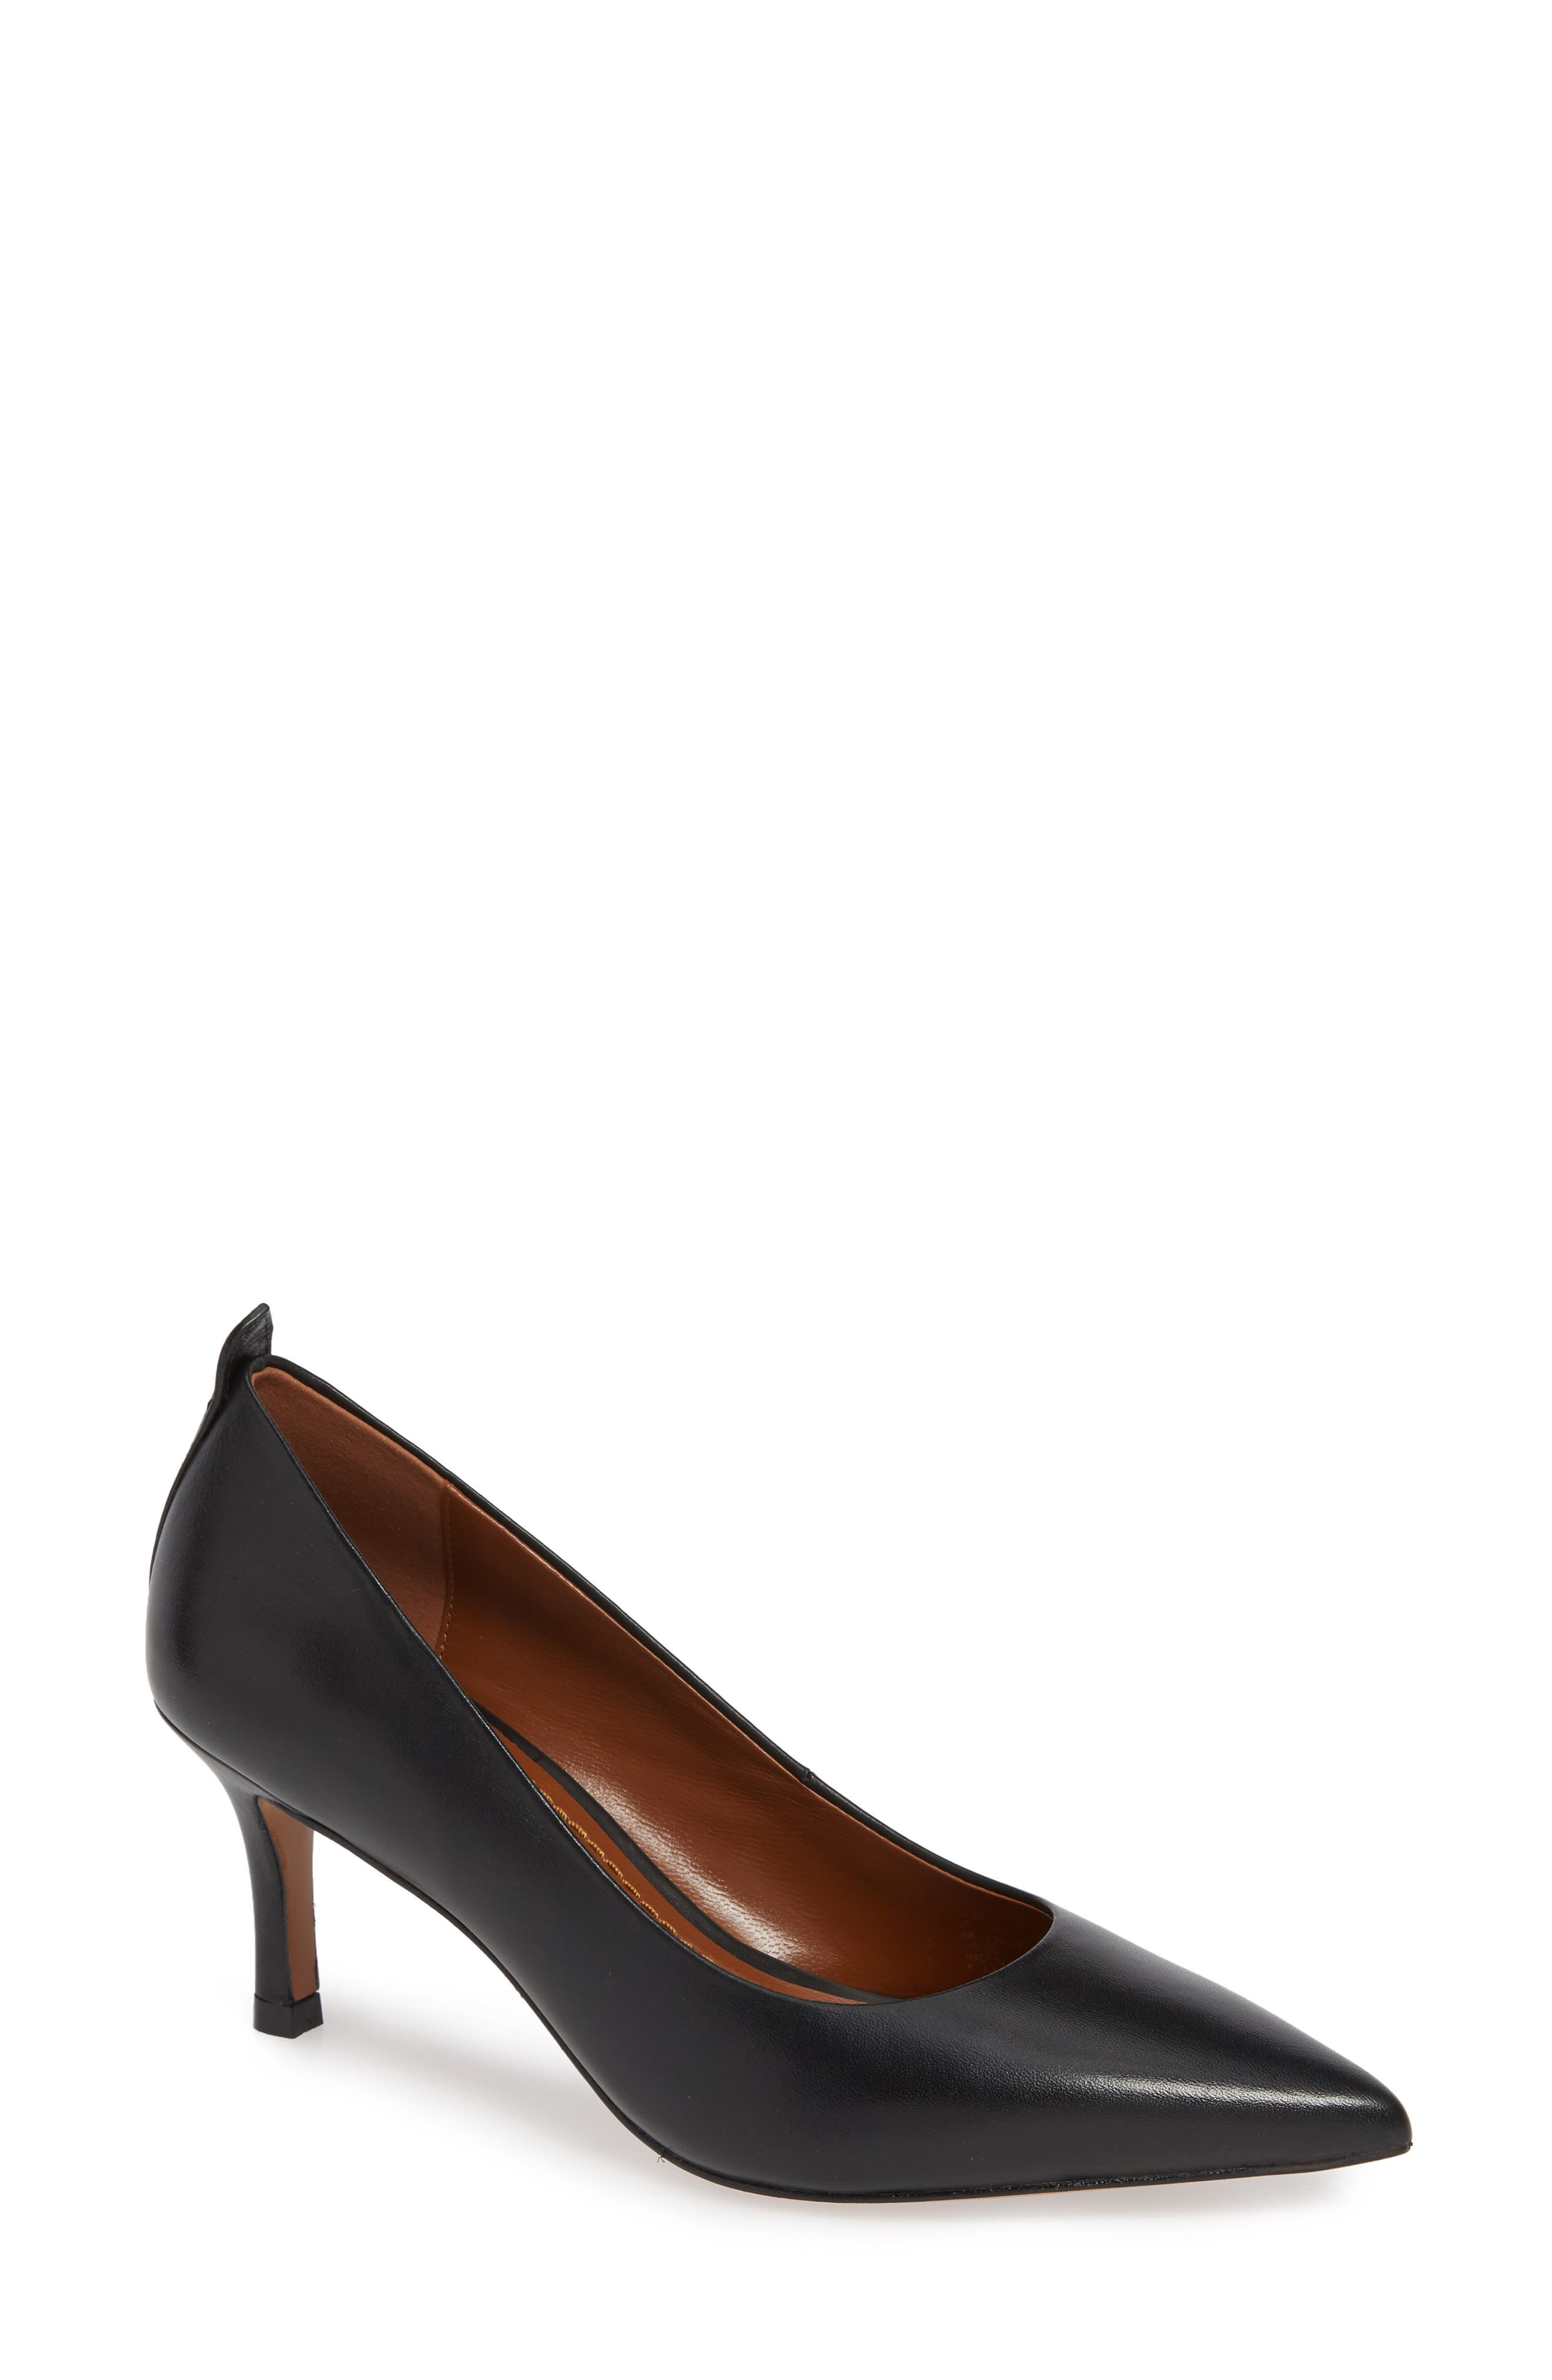 COACH, Waverly Mid Heel Pump, Main thumbnail 1, color, BLACK LEATHER